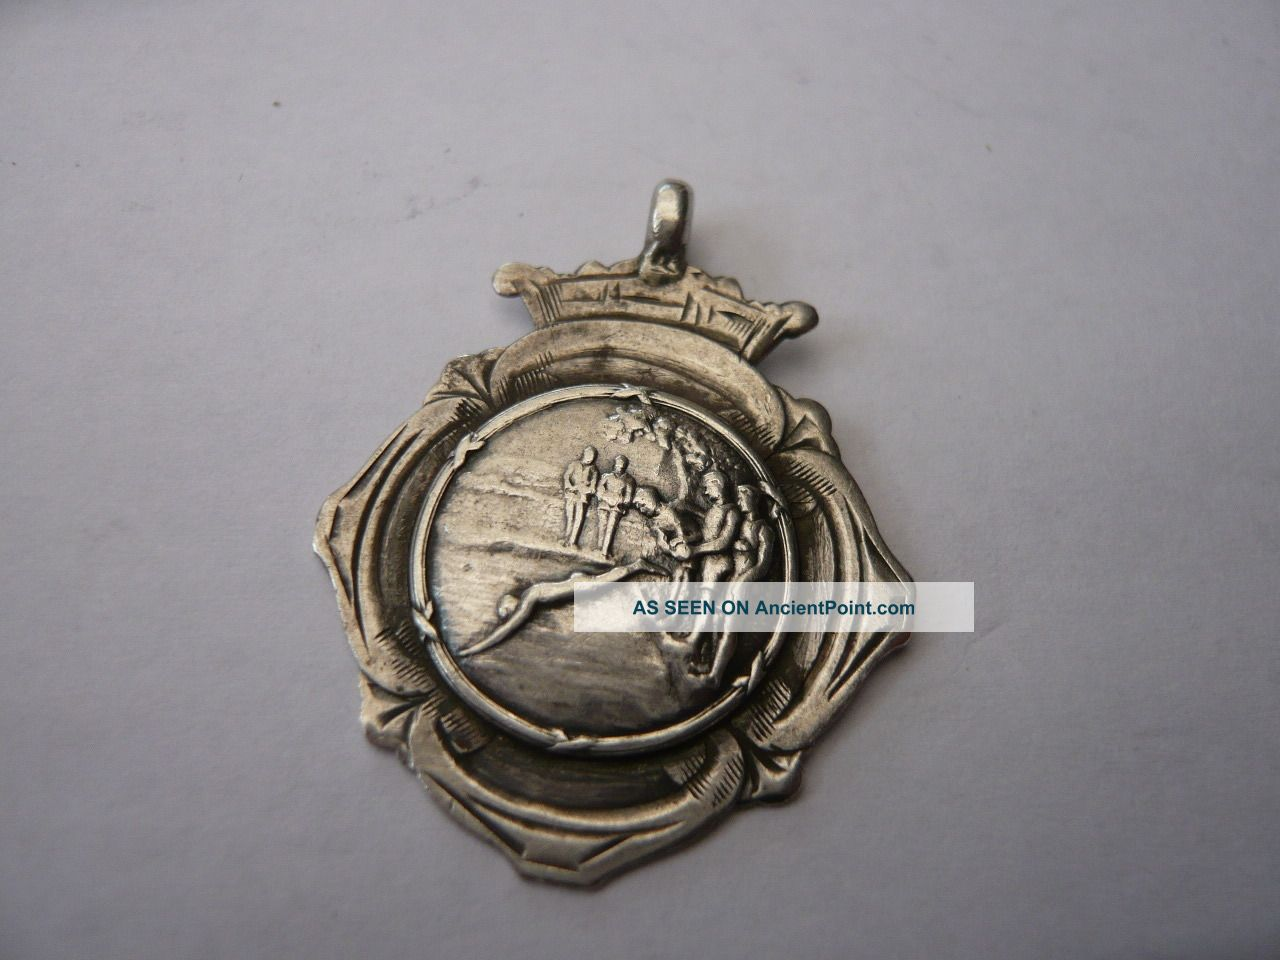 Good Vintage Silver Pocket Watch Chain Fob Medal Swimming Edwardian C 1913 Pocket Watches/ Chains/ Fobs photo